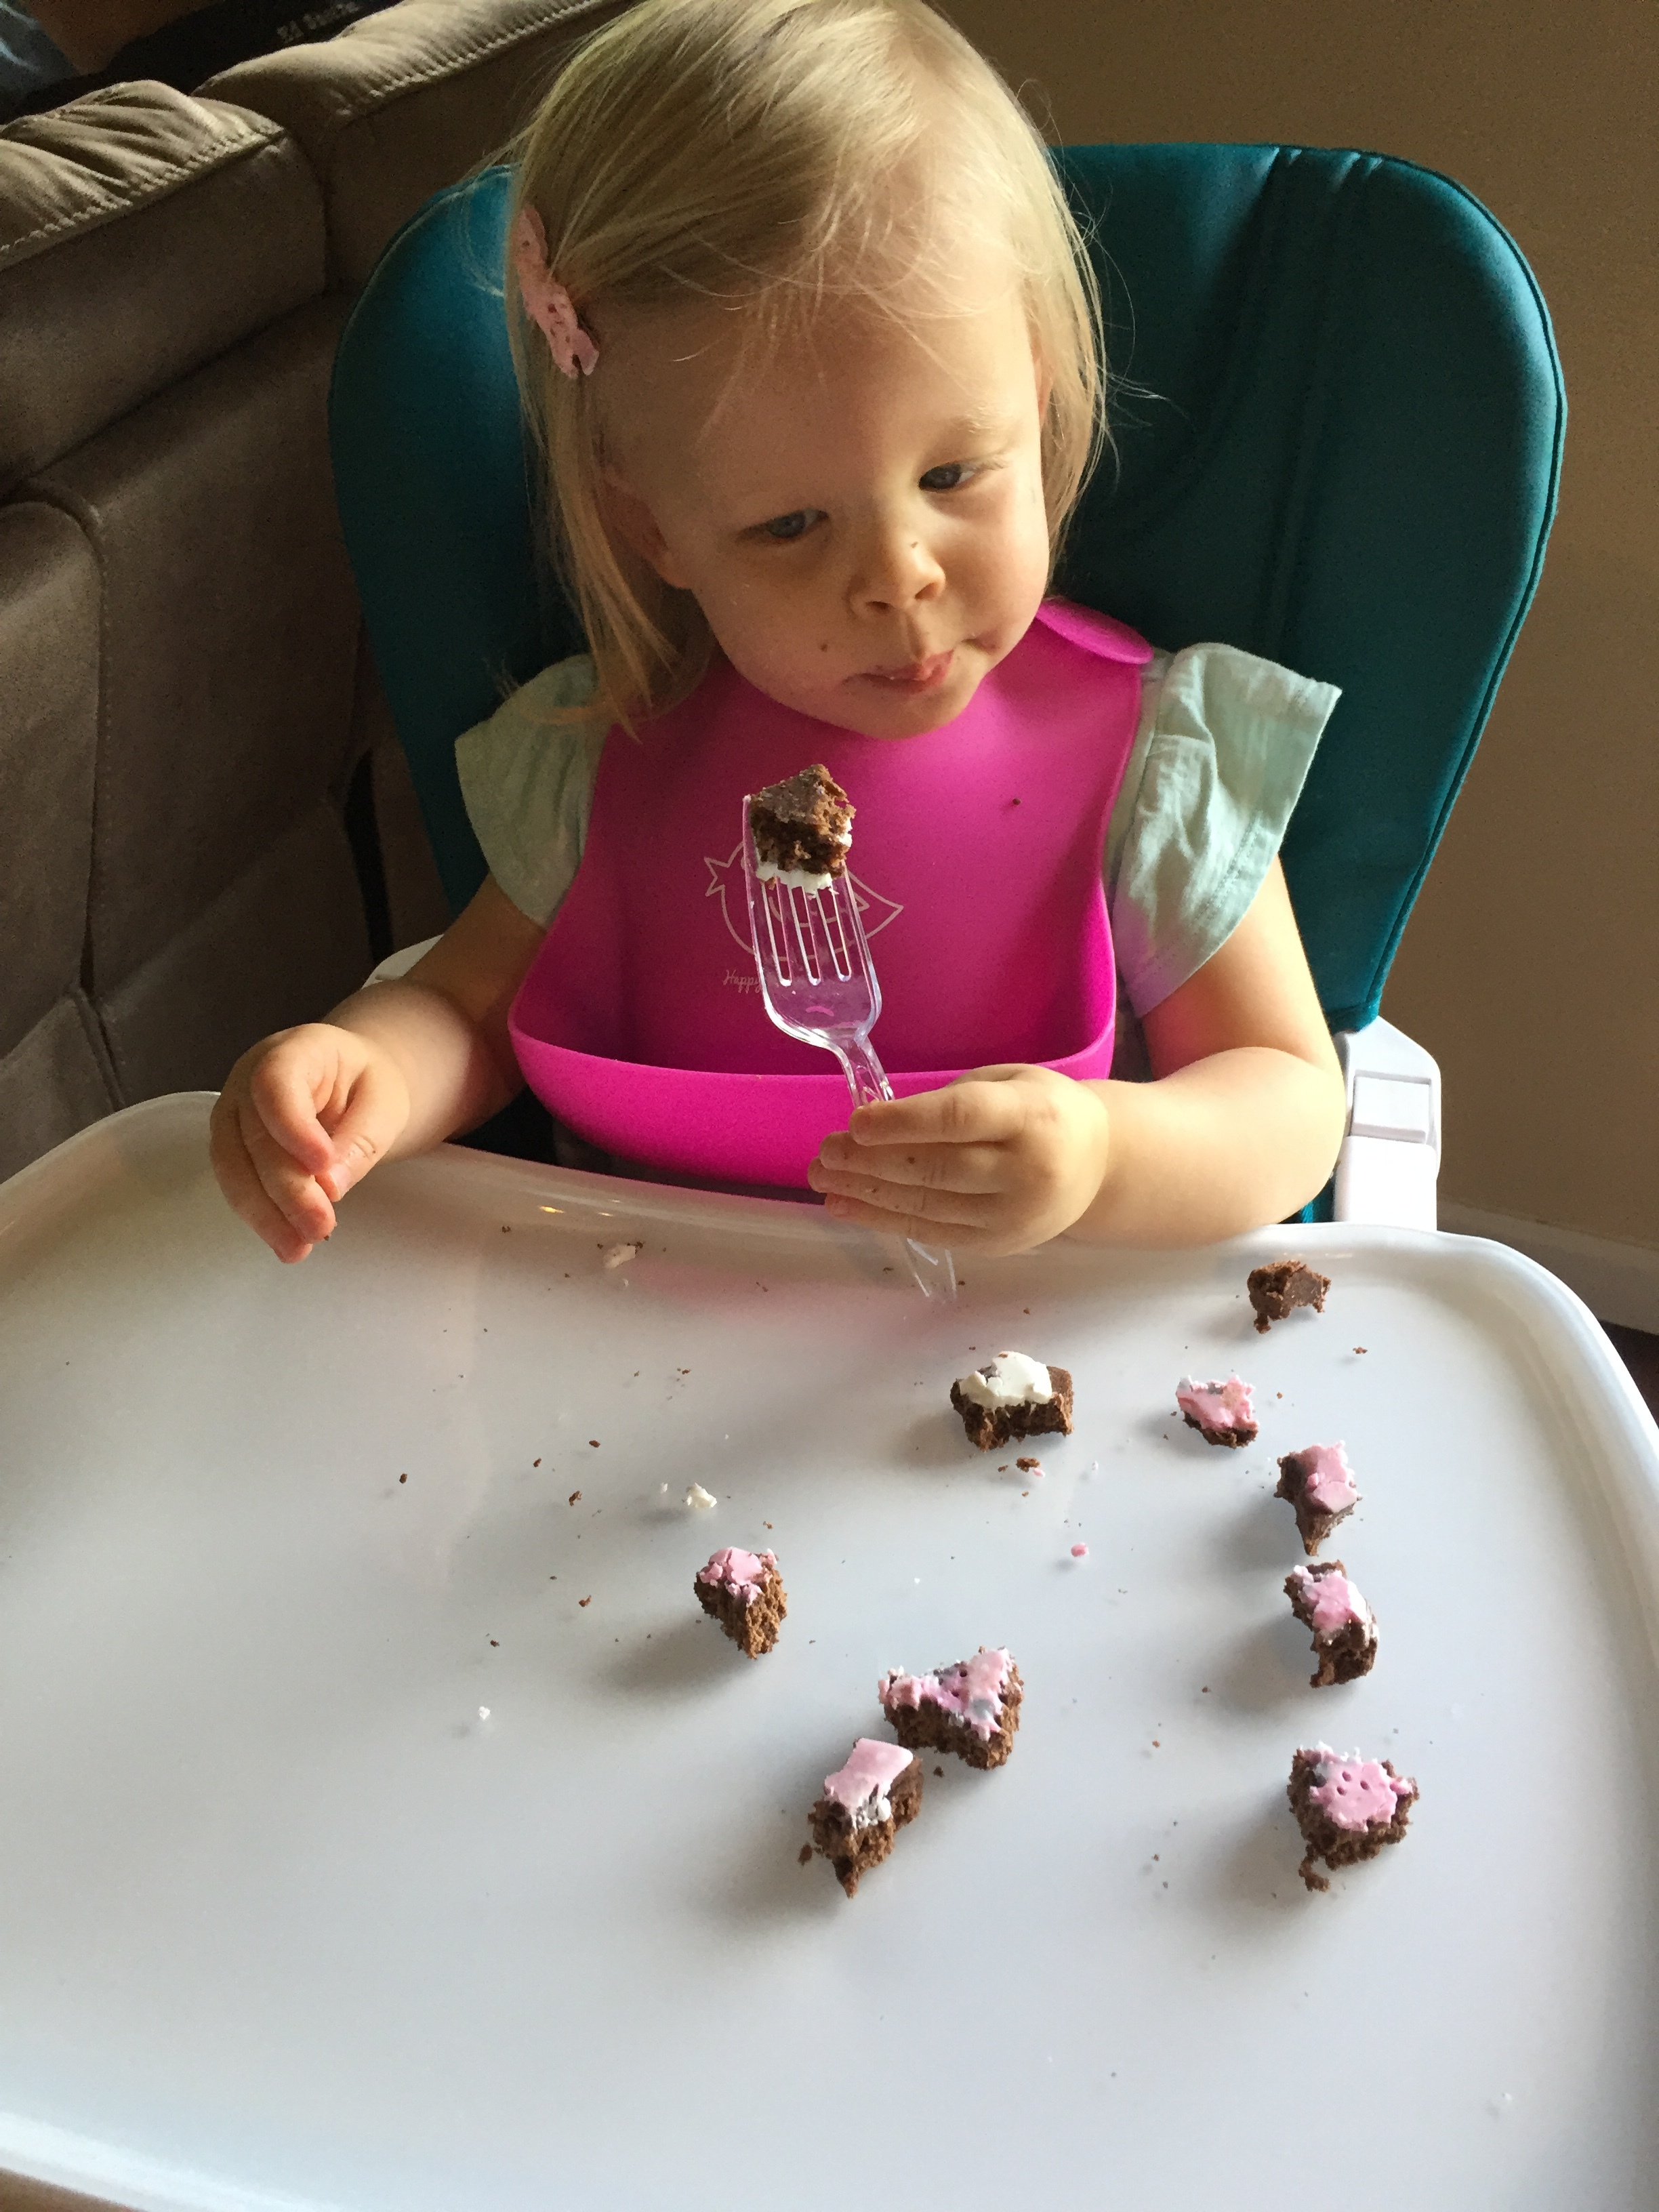 And finally…..Emmy wanted to use a fork. So Momma broke it up into pieces for her. :)